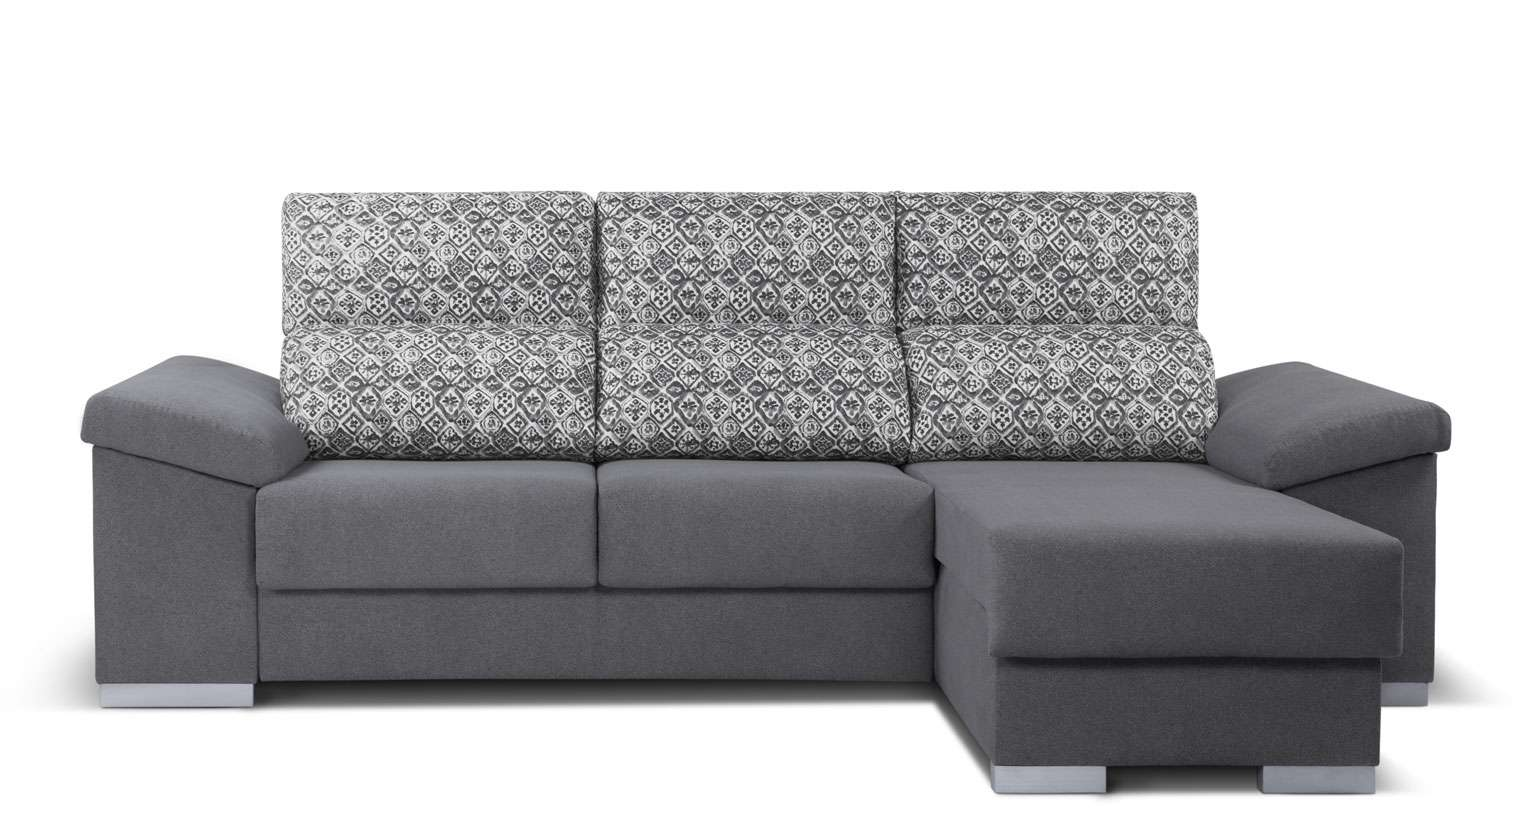 Comprar chaise longue tela belen chaiselongue drcha 3 for Chaise longue baratos